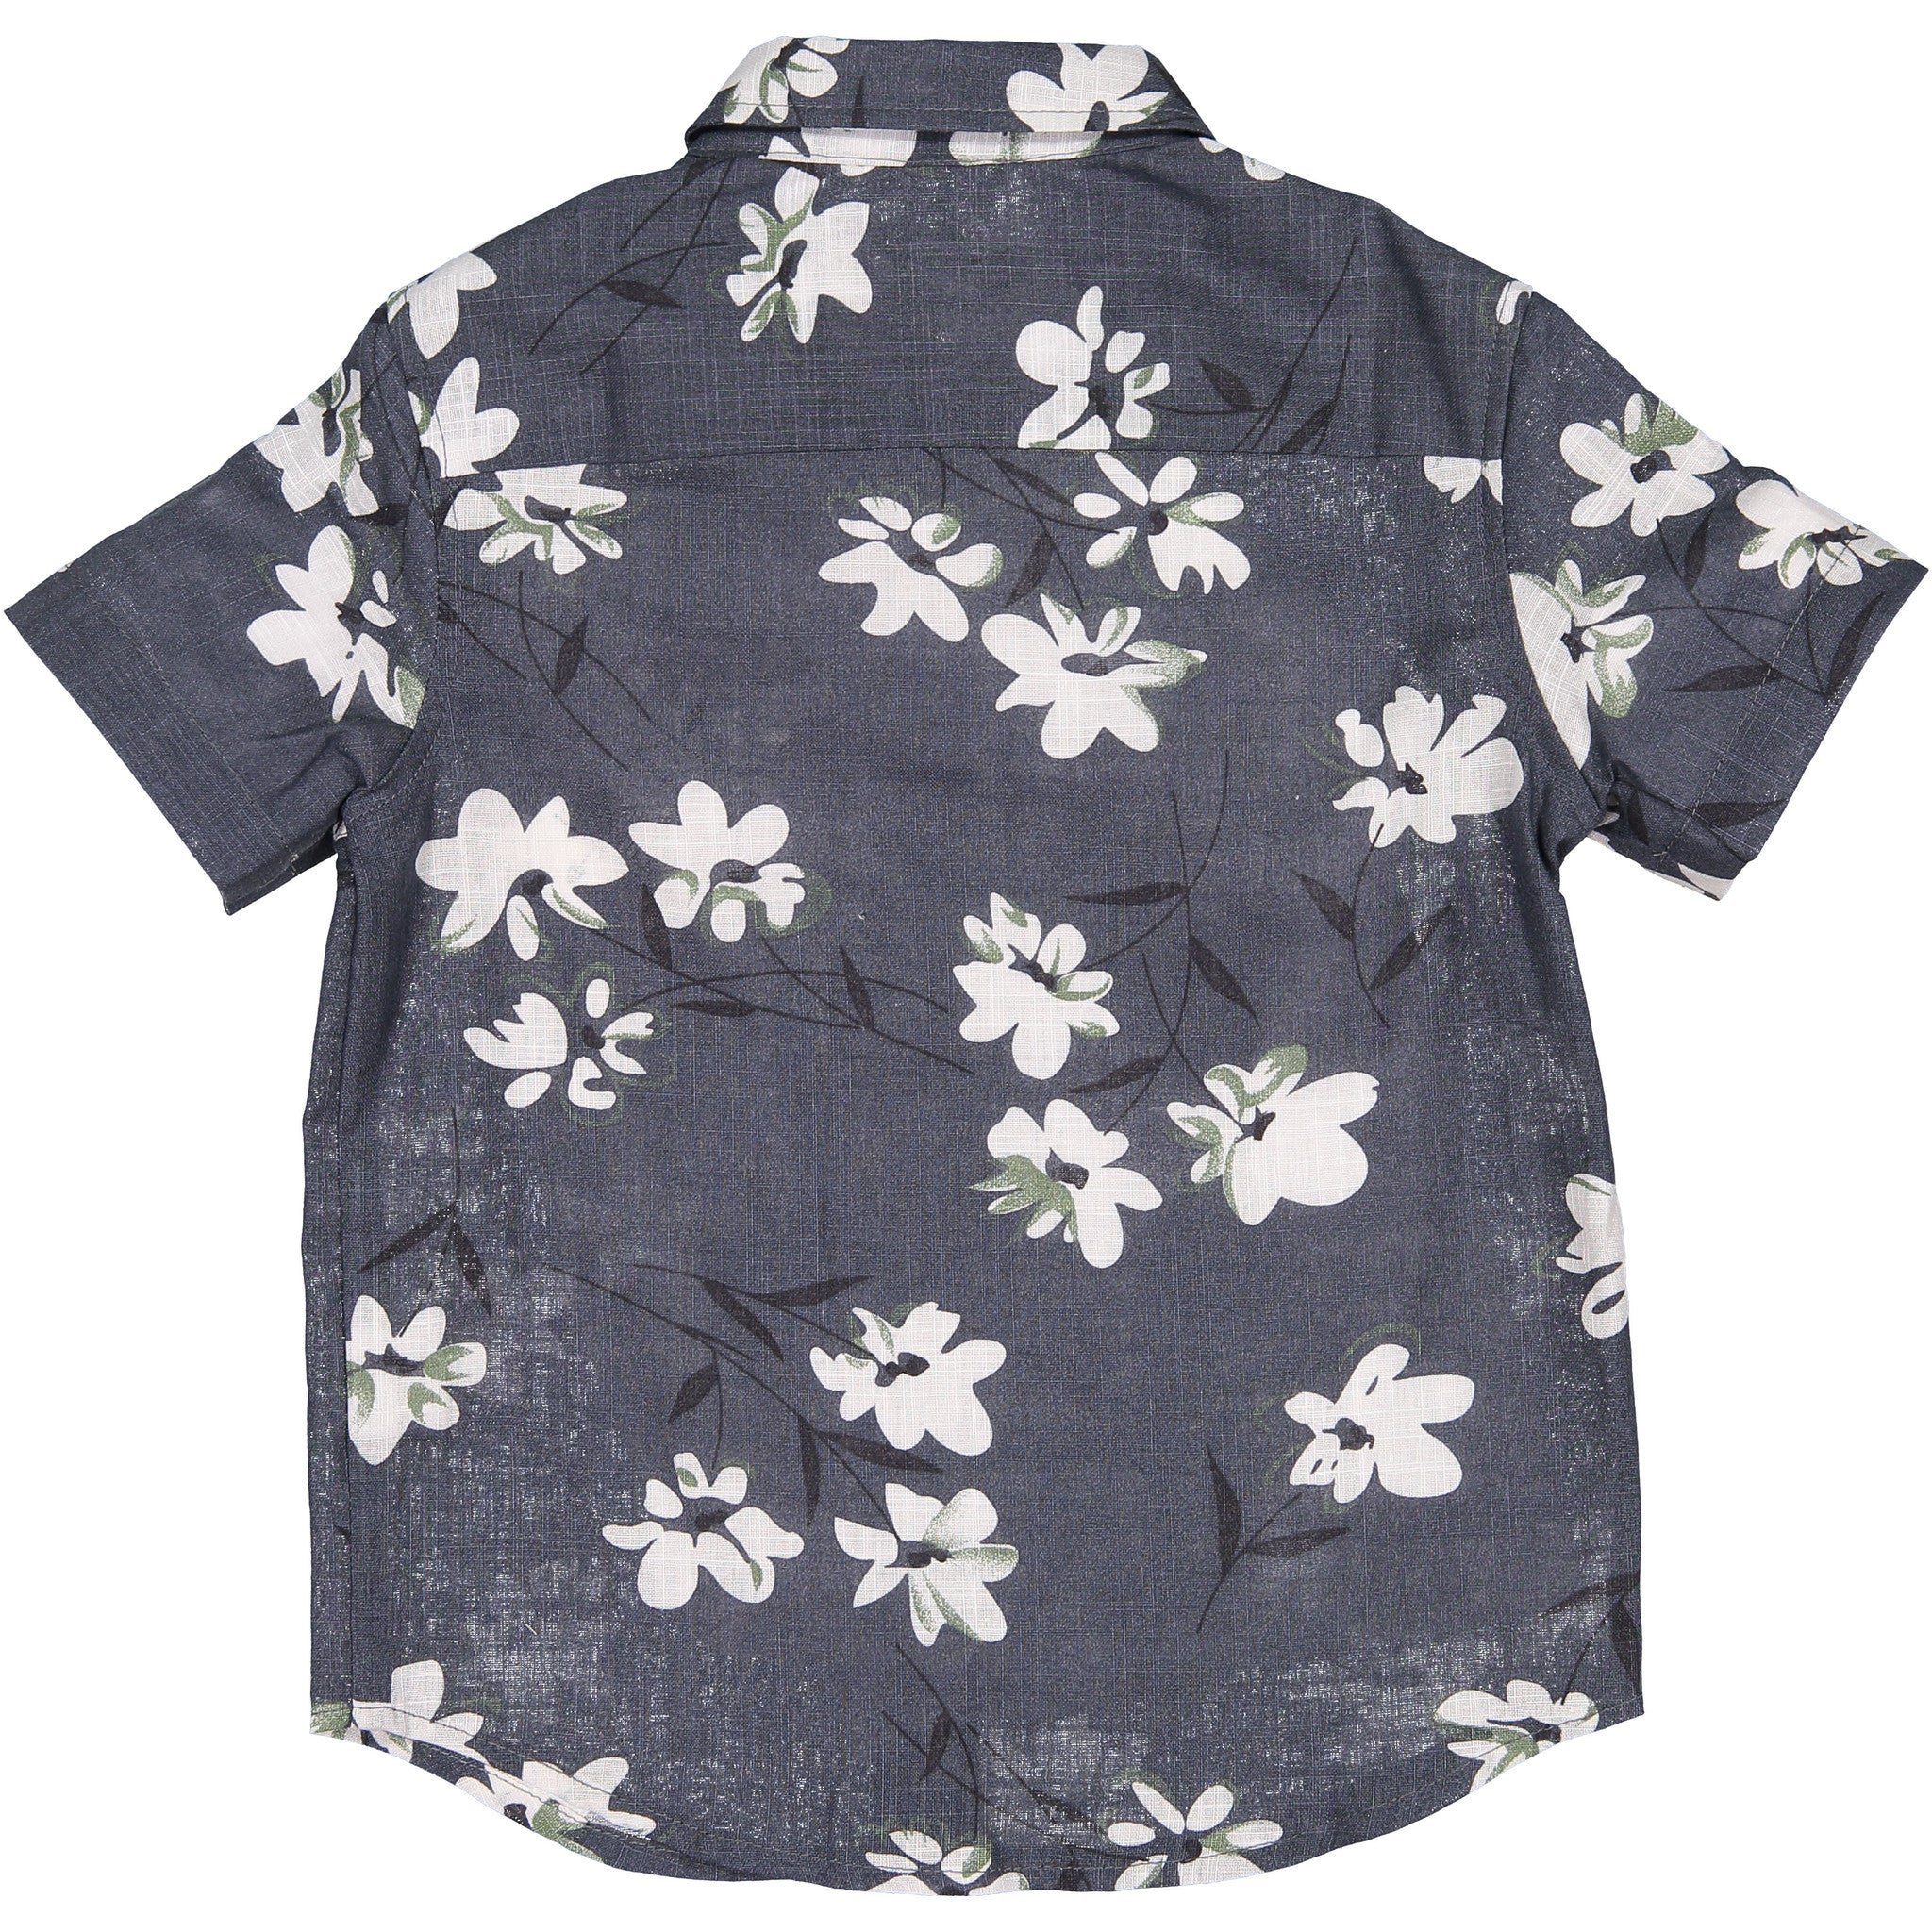 Boys & Arrows Chambray Floral Shirt - Ladida